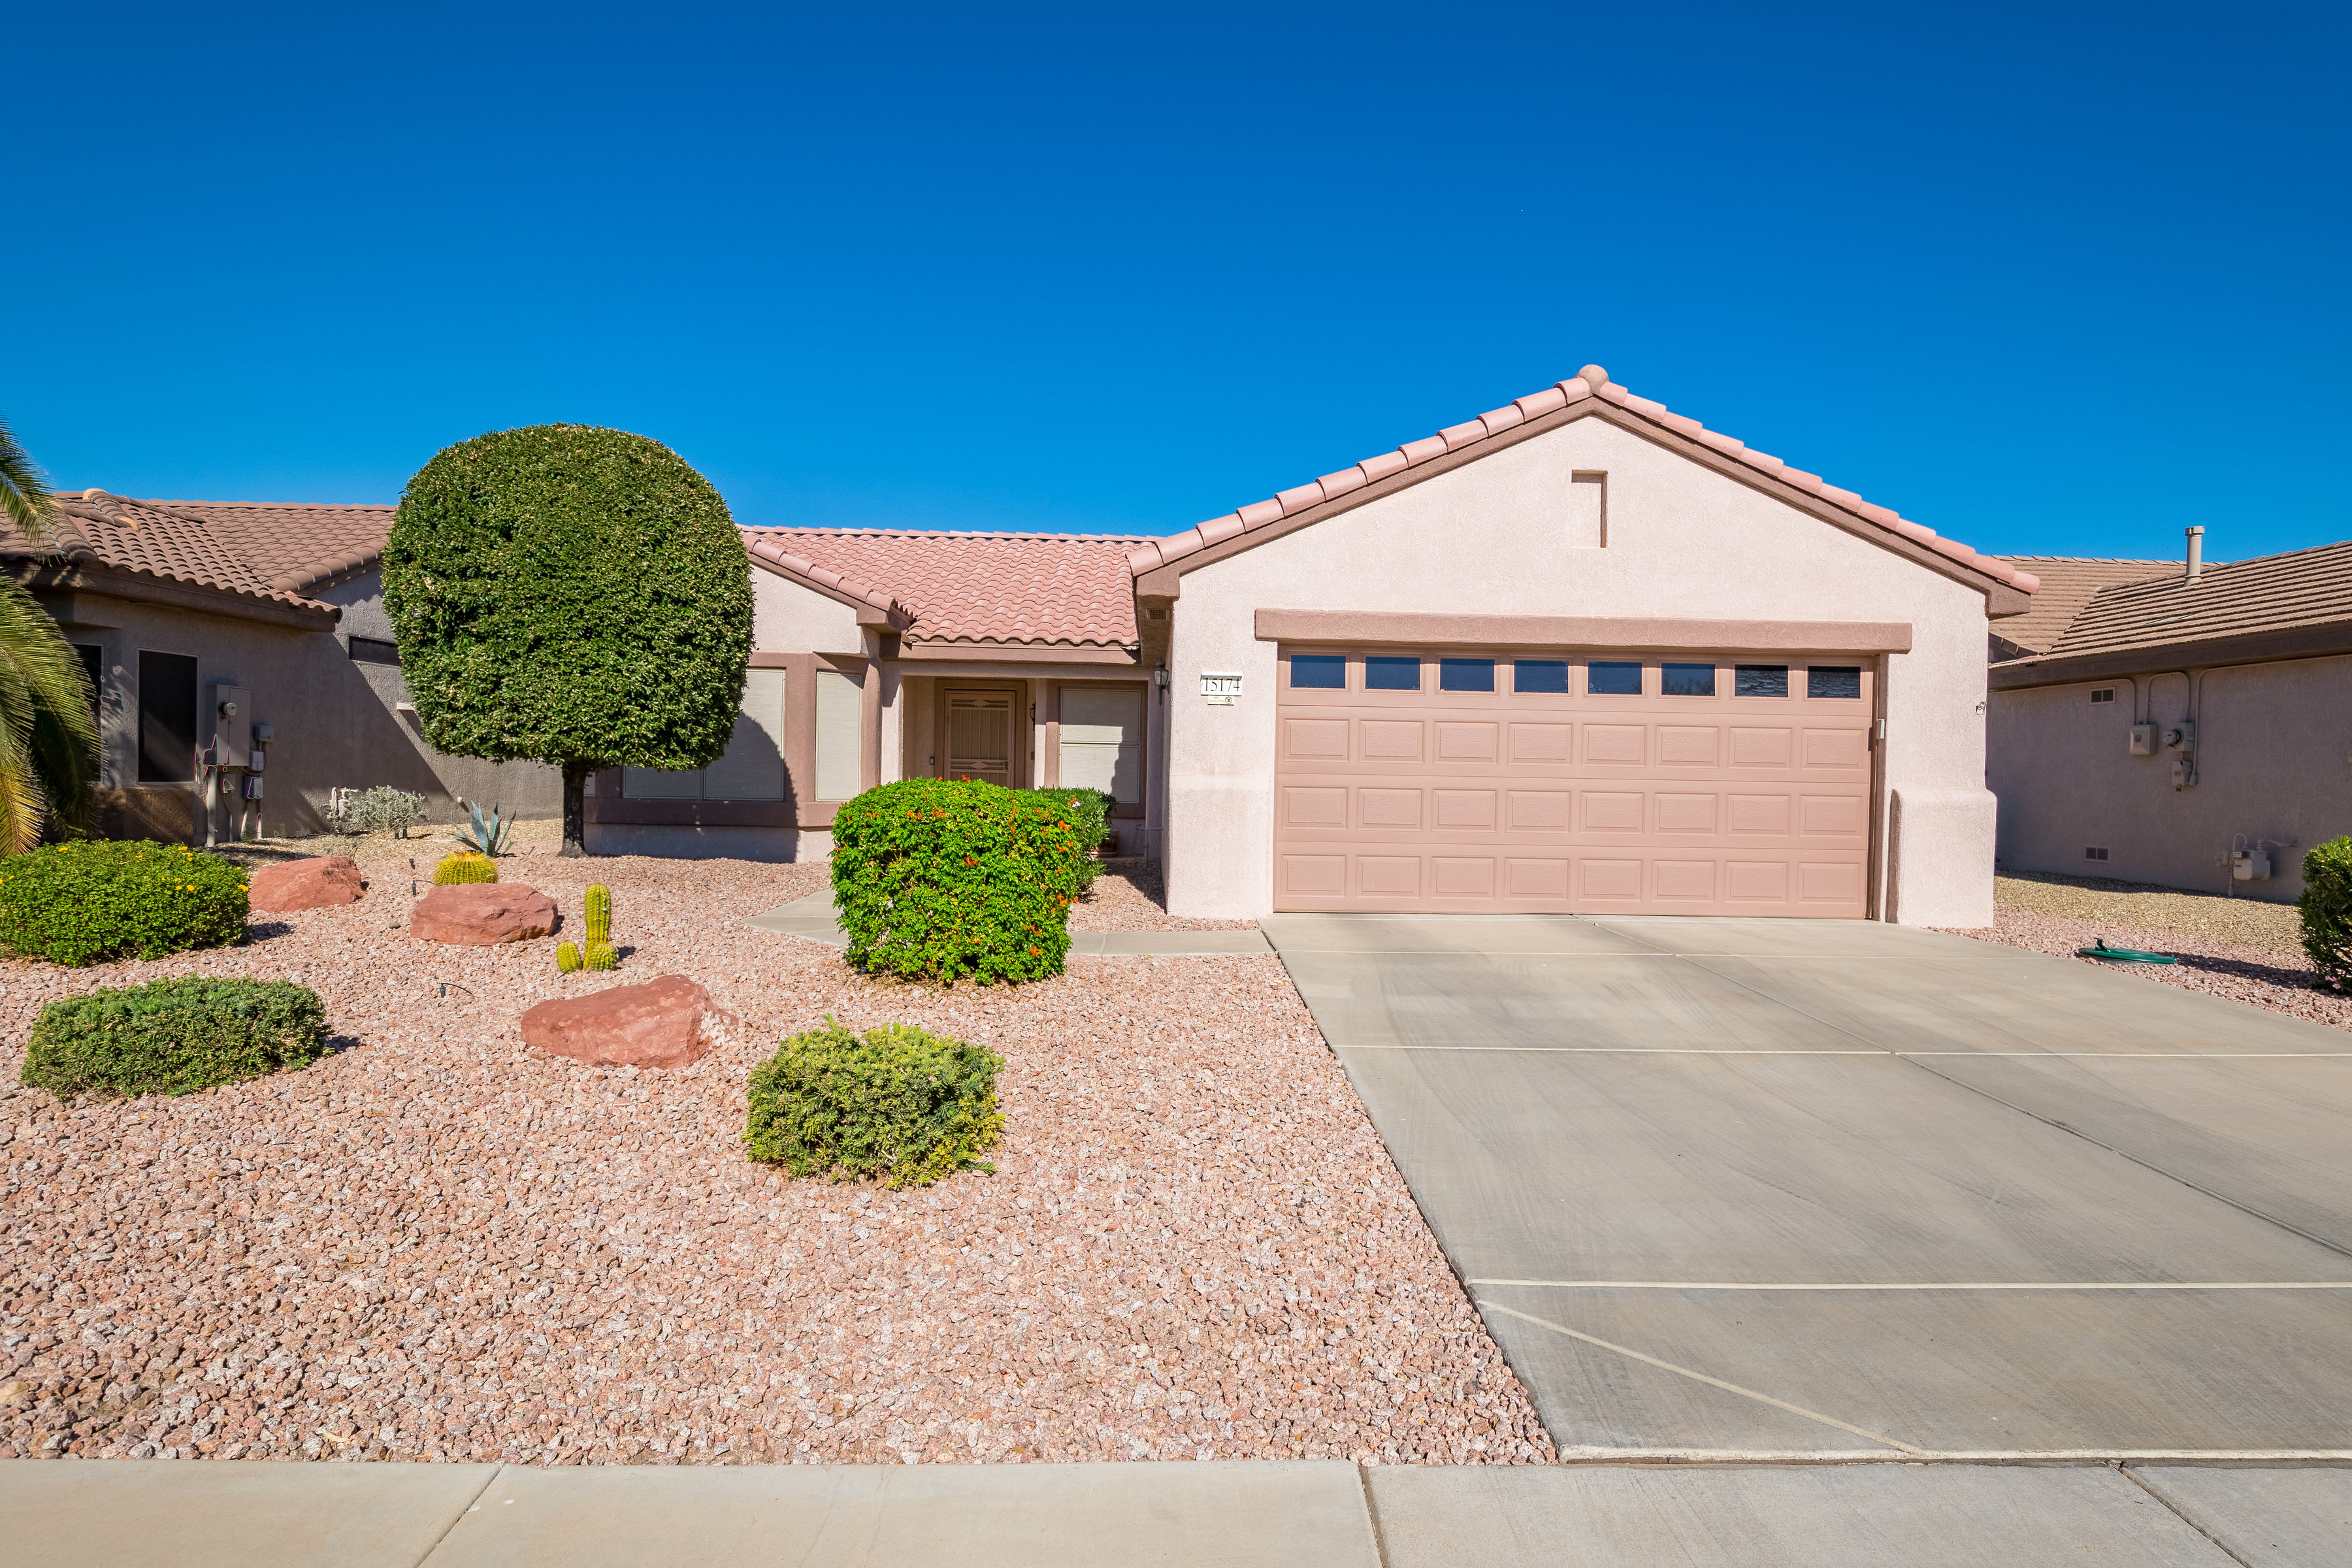 Sun City Grand 2 bed 2 bath home for sale just reduced.